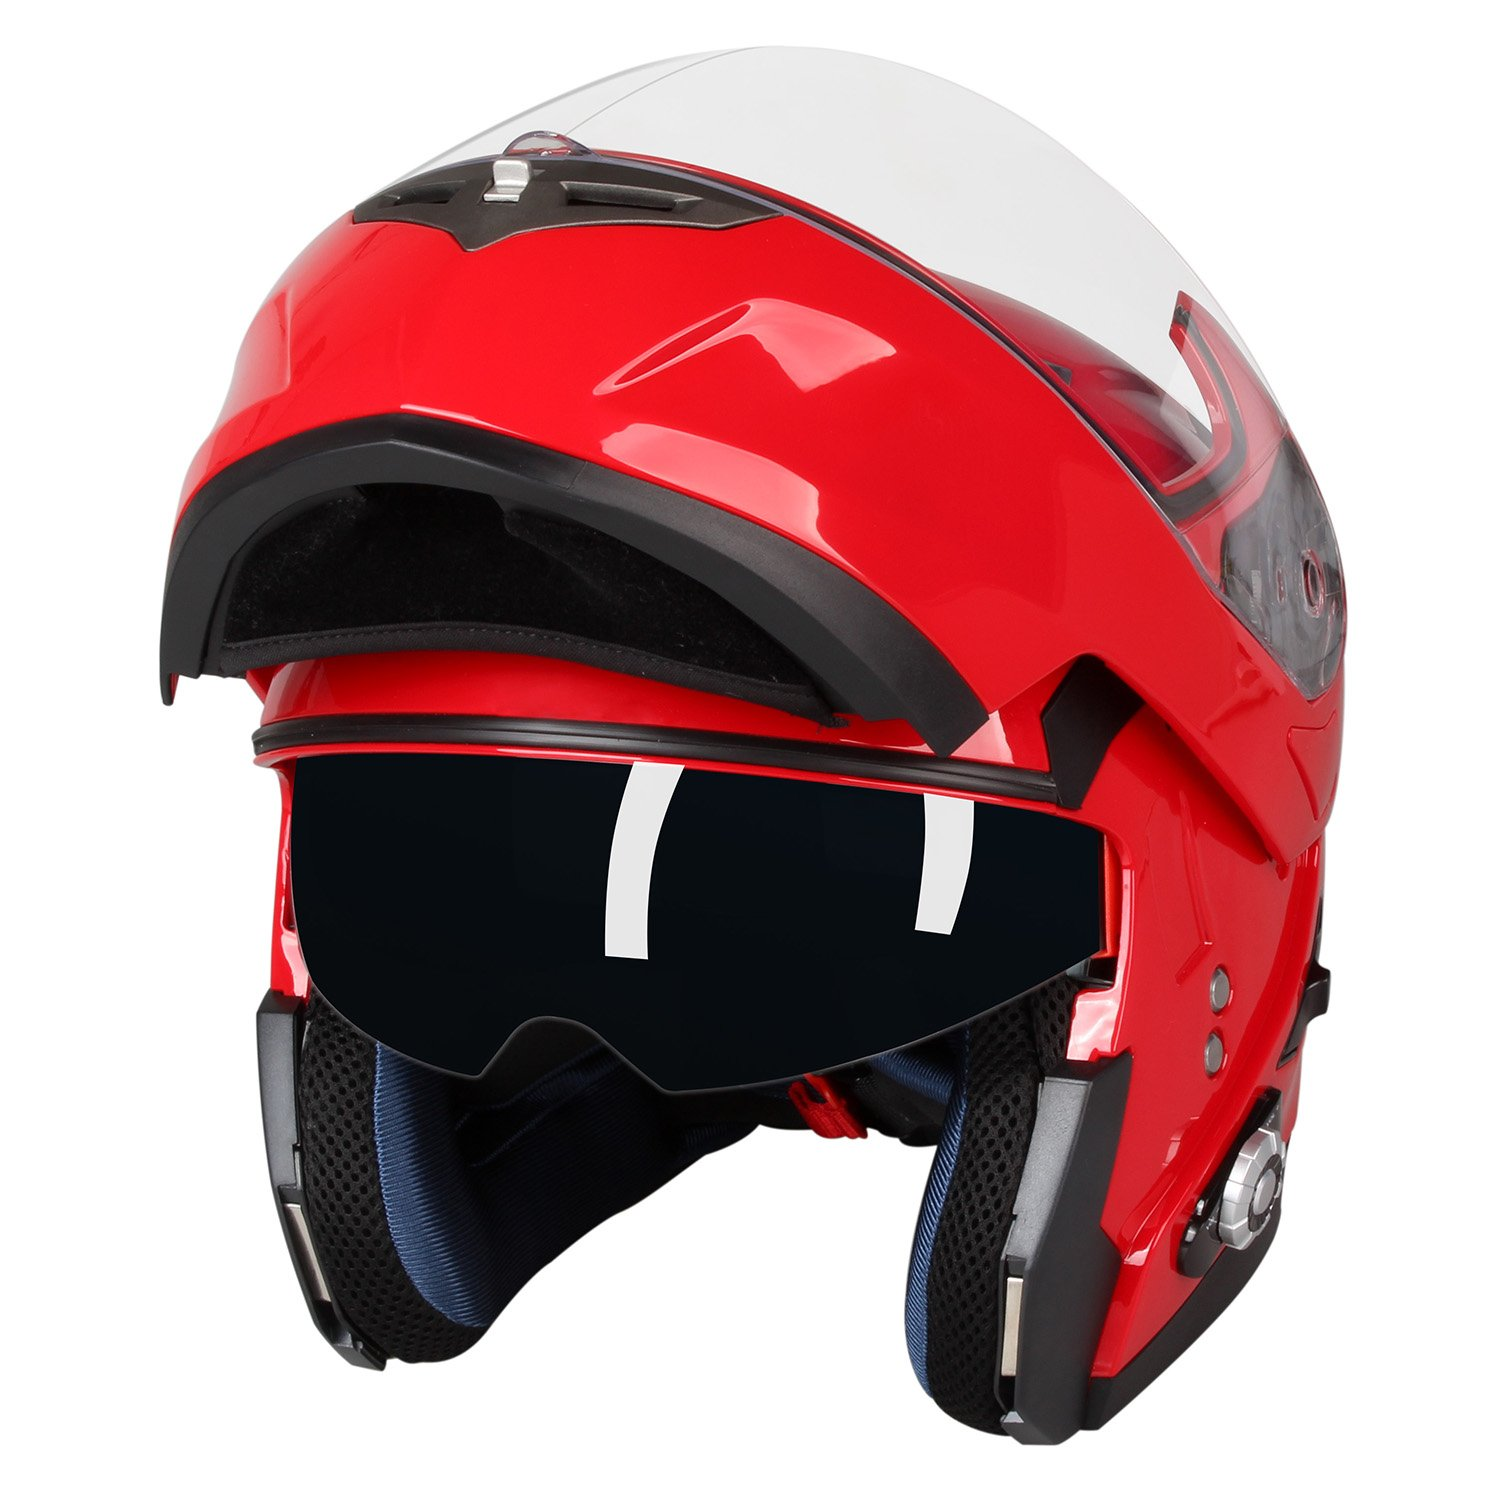 Motorcycle Bluetooth Helmets,FreedConn Flip up Dual Visors Full Face Helmet,Built-in Integrated Intercom Communication System(Range 500M,2-3Riders Pairing,FM radio,Waterproof,L,Red) by FreedConn (Image #3)